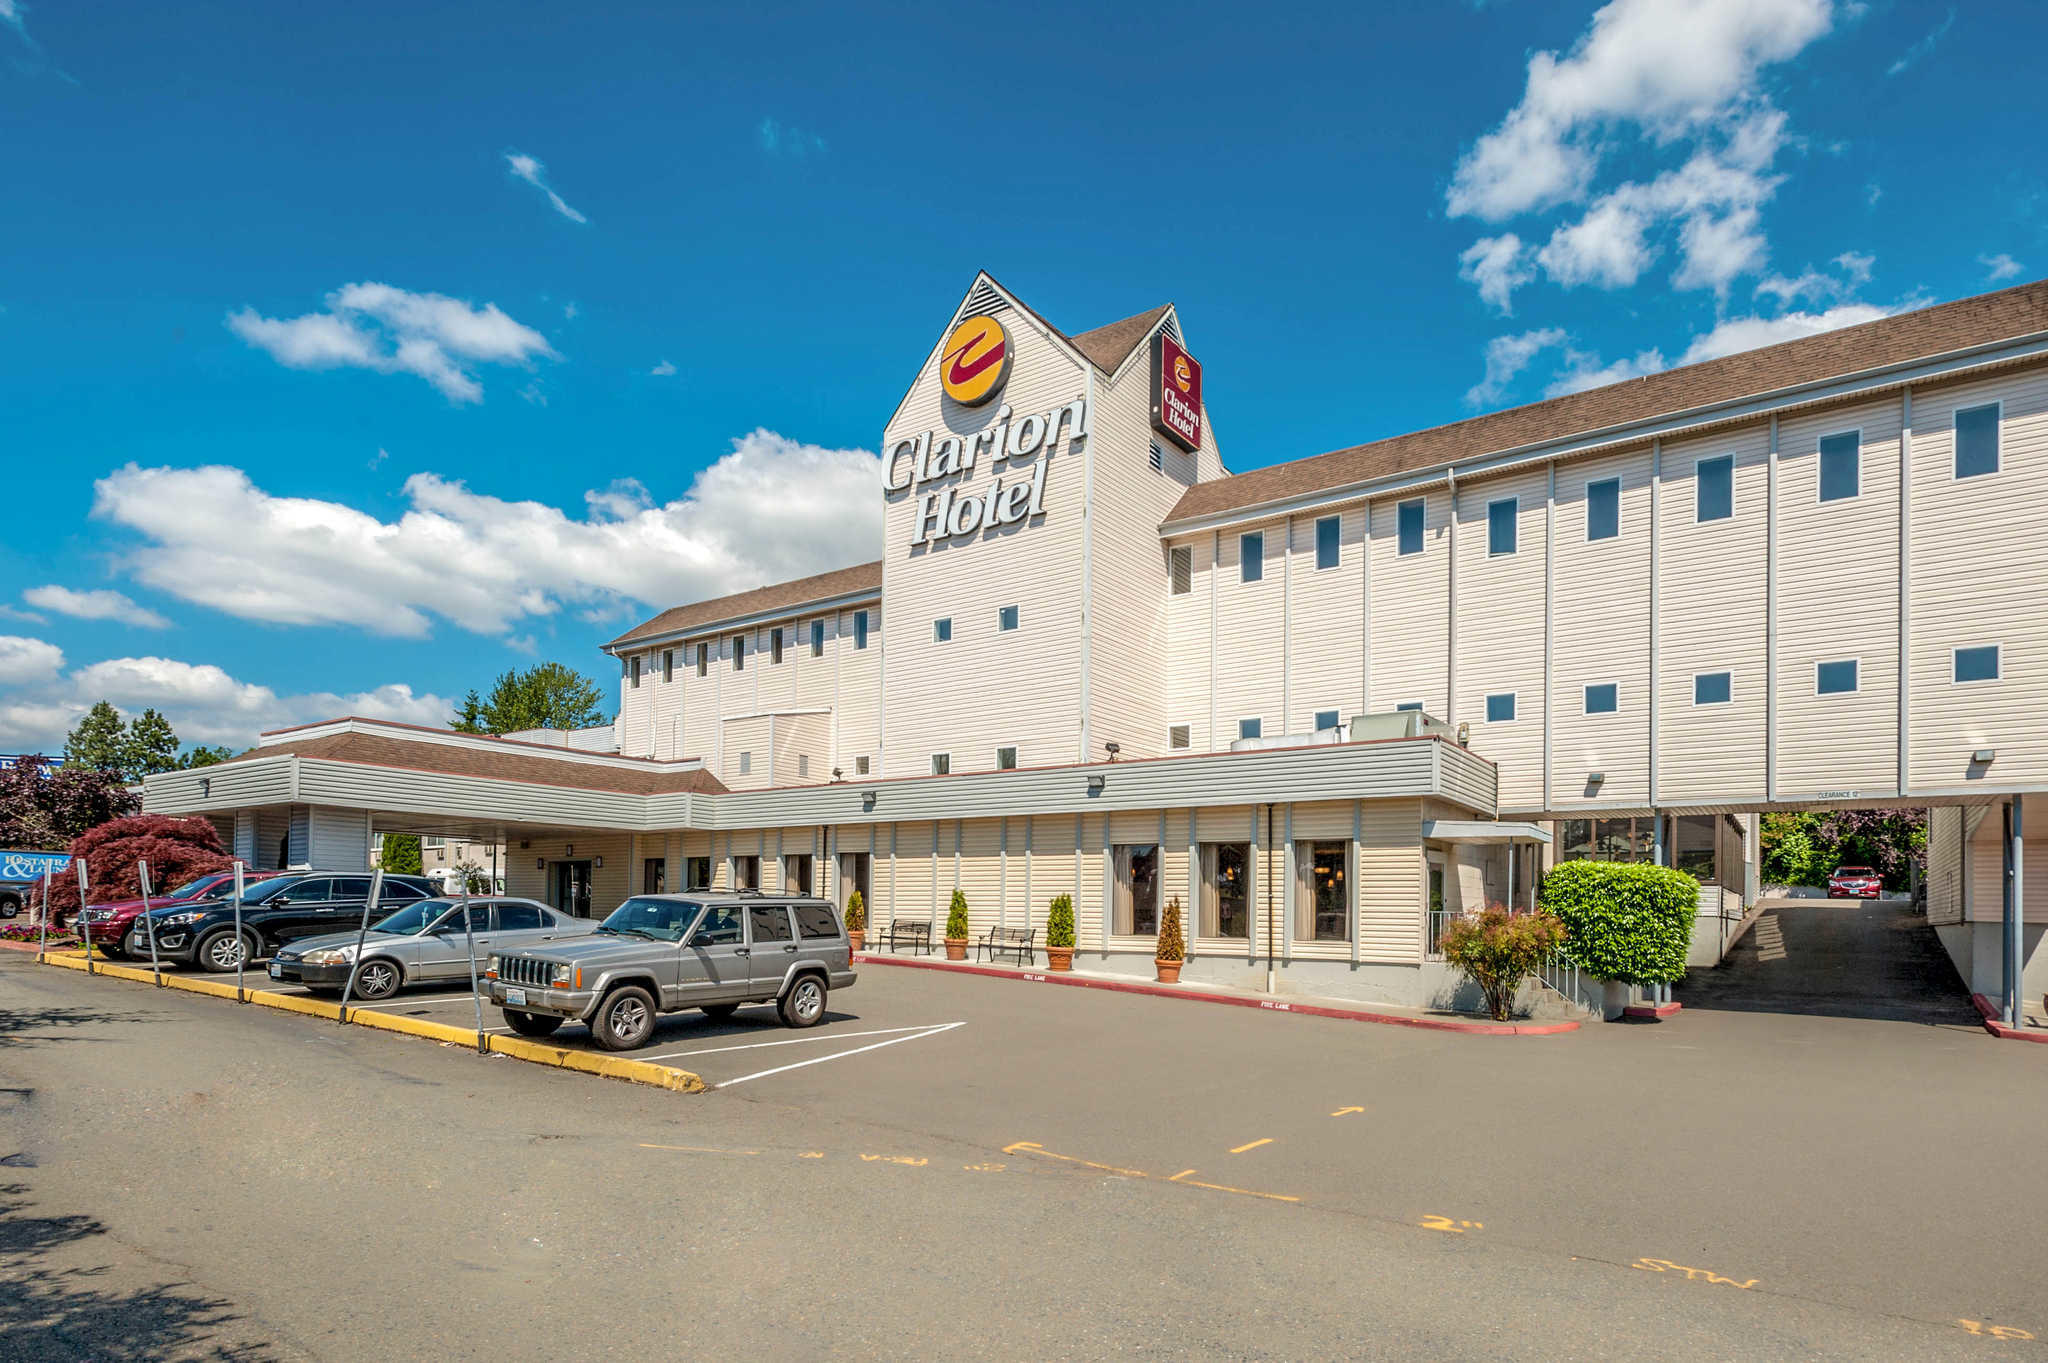 Clarion Hotel Seattle Airport image 2